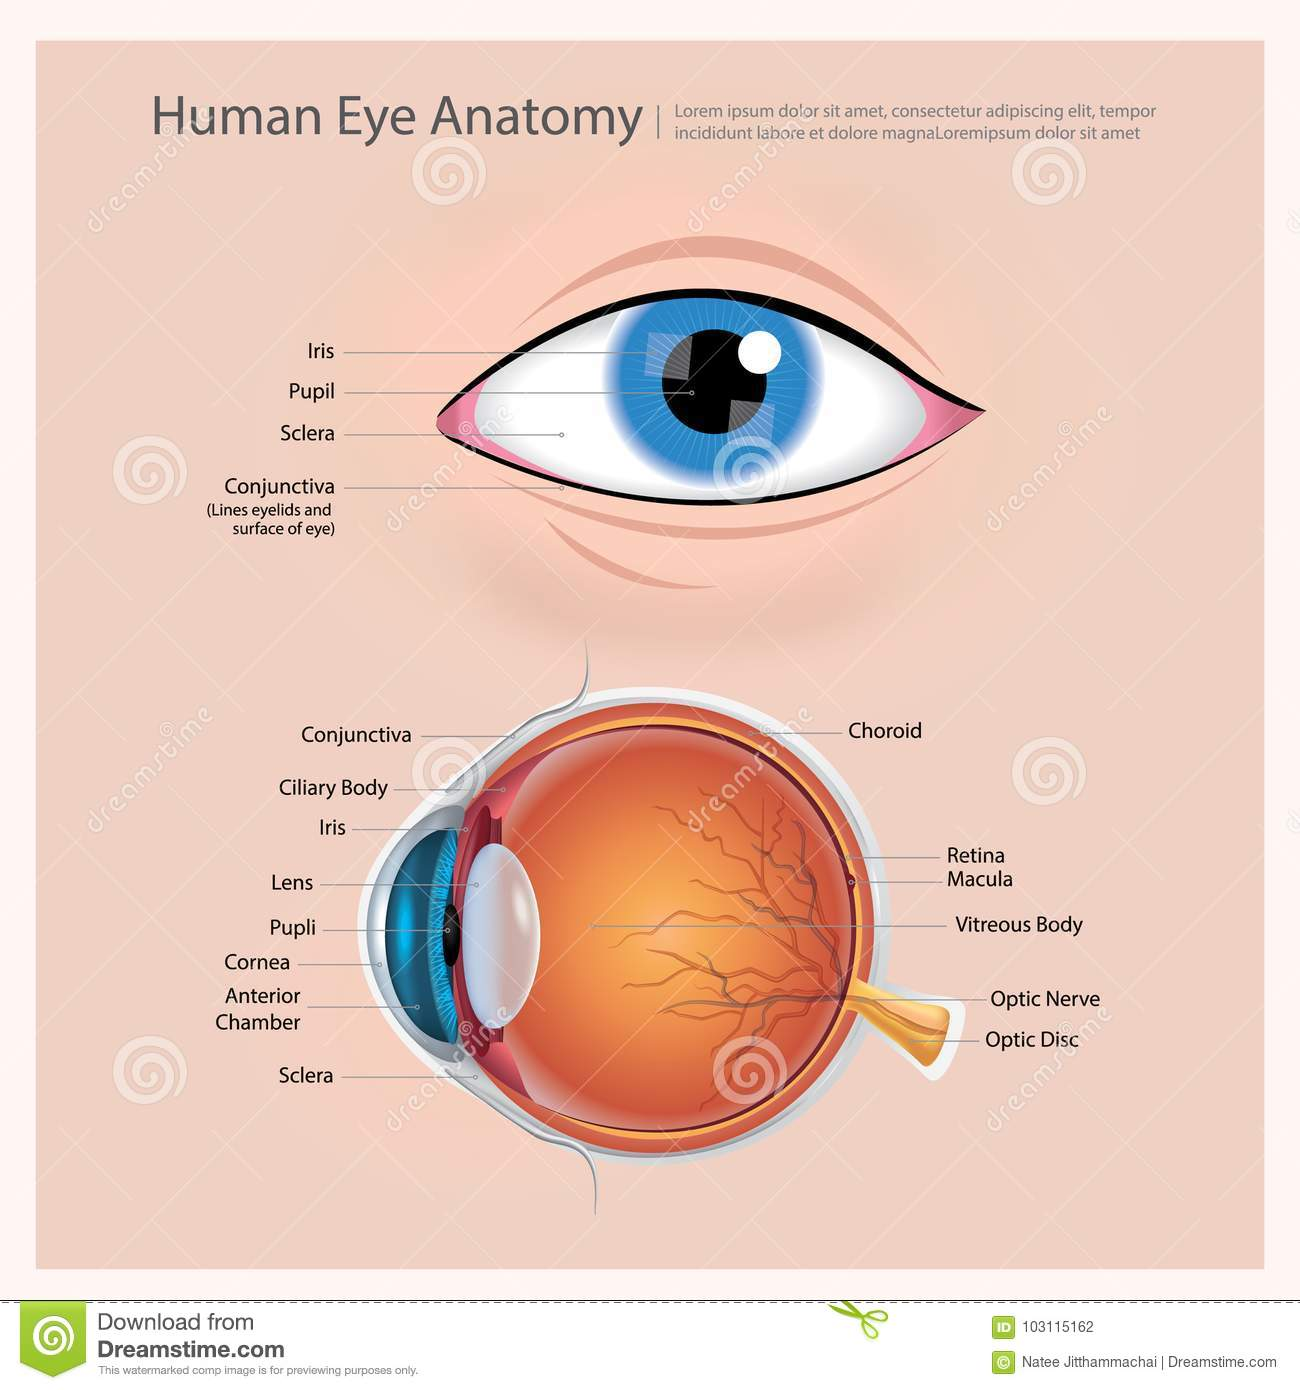 Human Eye Anatomy stock vector. Illustration of anterior - 103115162